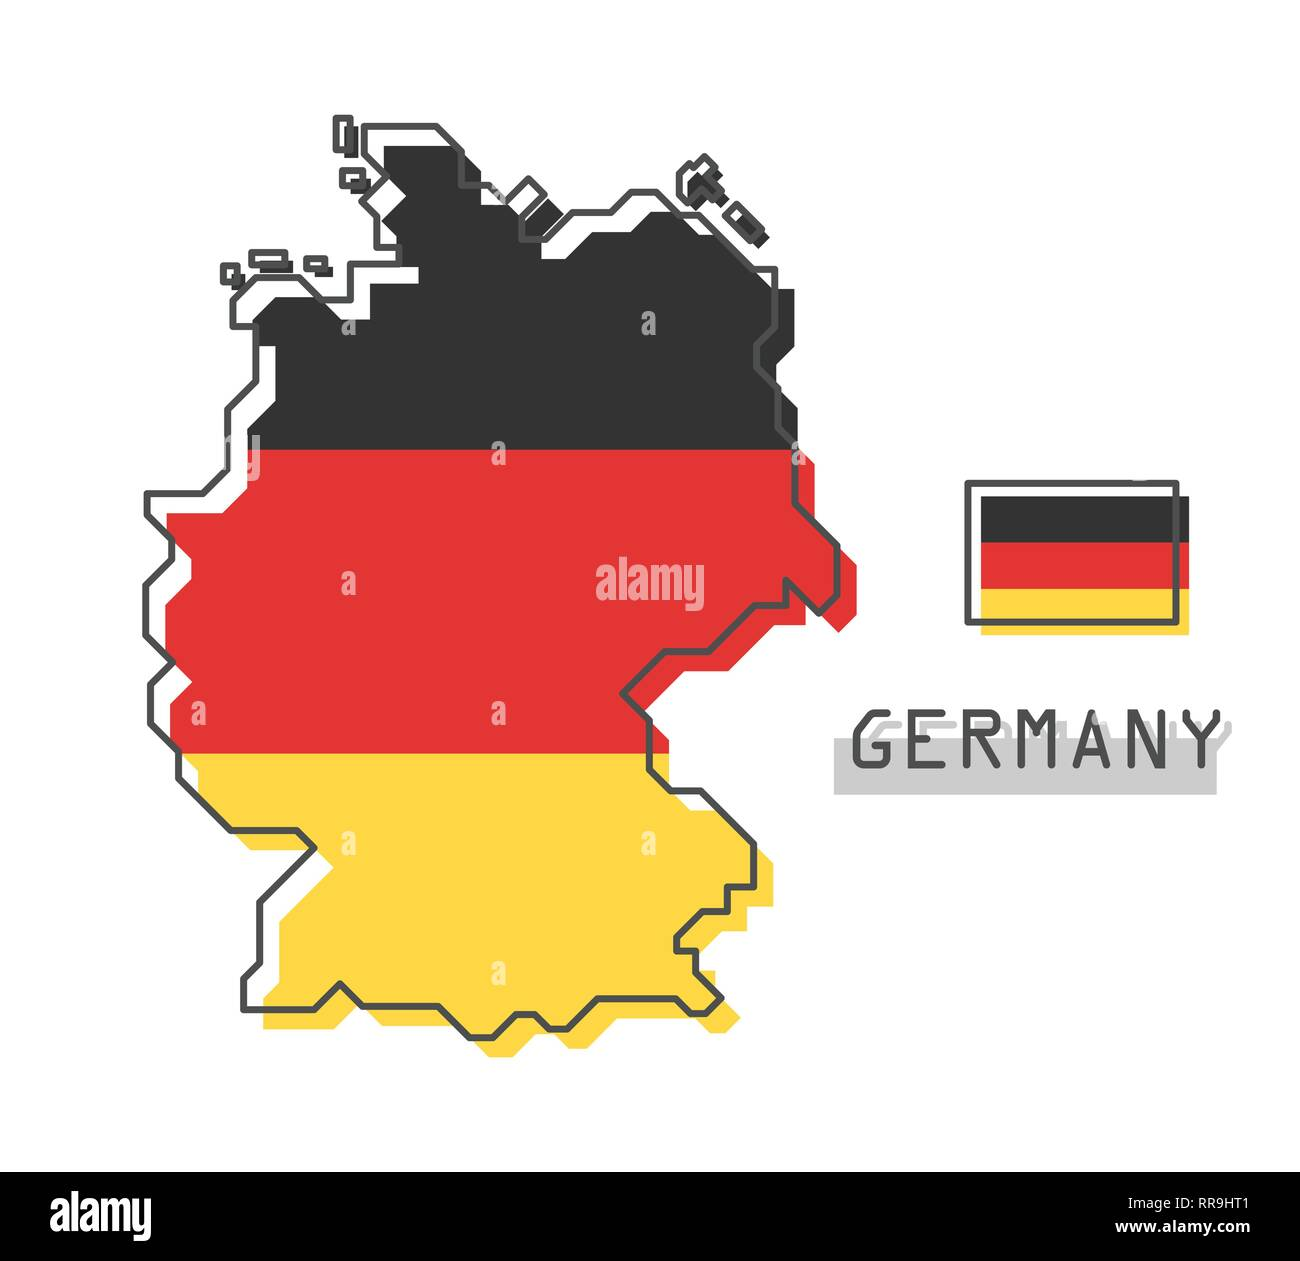 Cartoon Map Of Germany.Germany Map And Flag Modern Simple Line Cartoon Design Vector